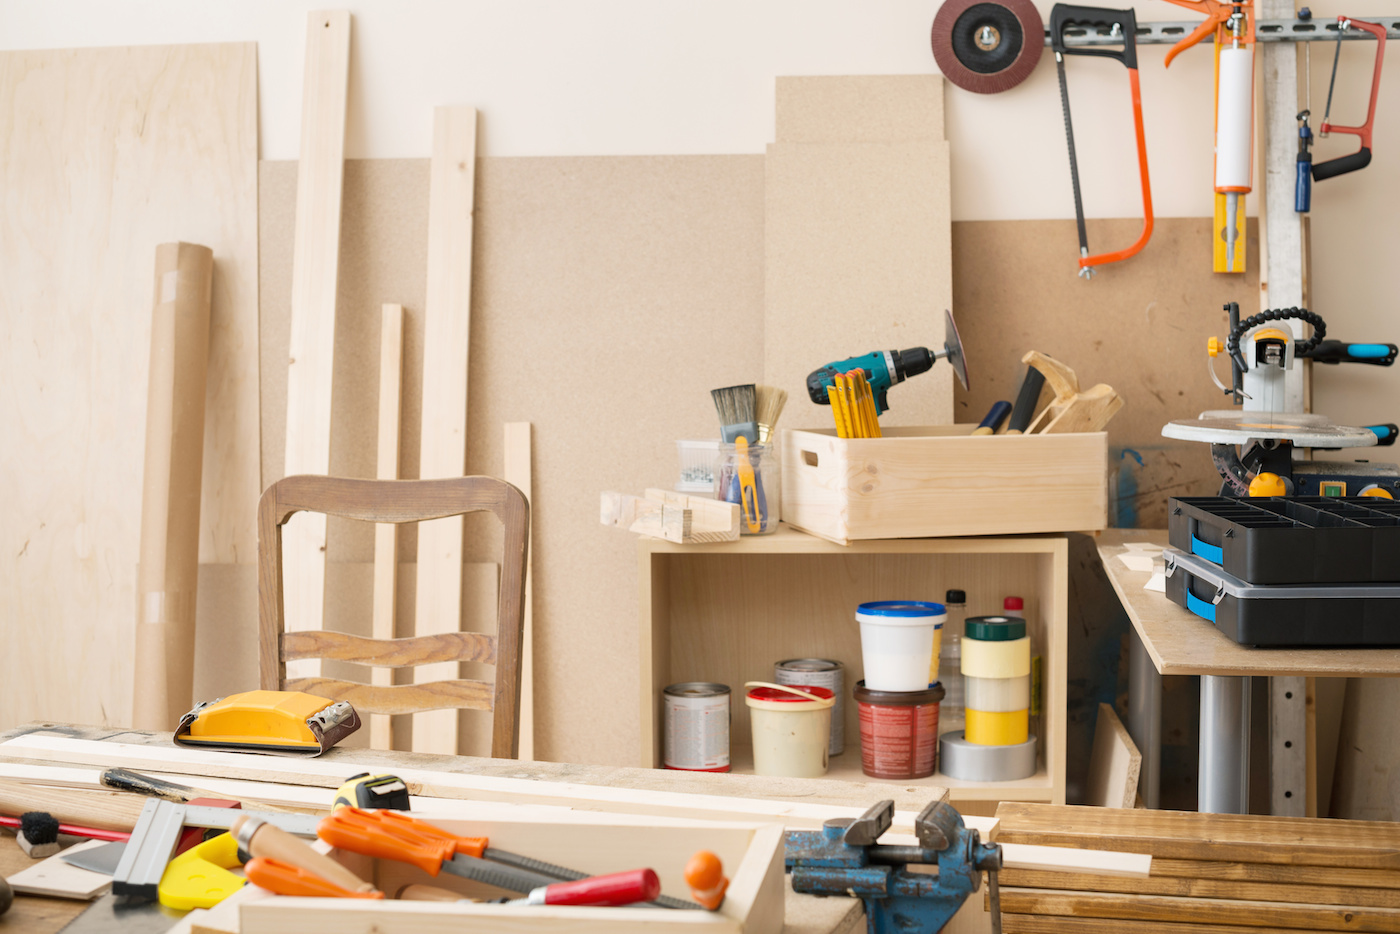 The Easiest Way To Keep Track Of Home Improvement